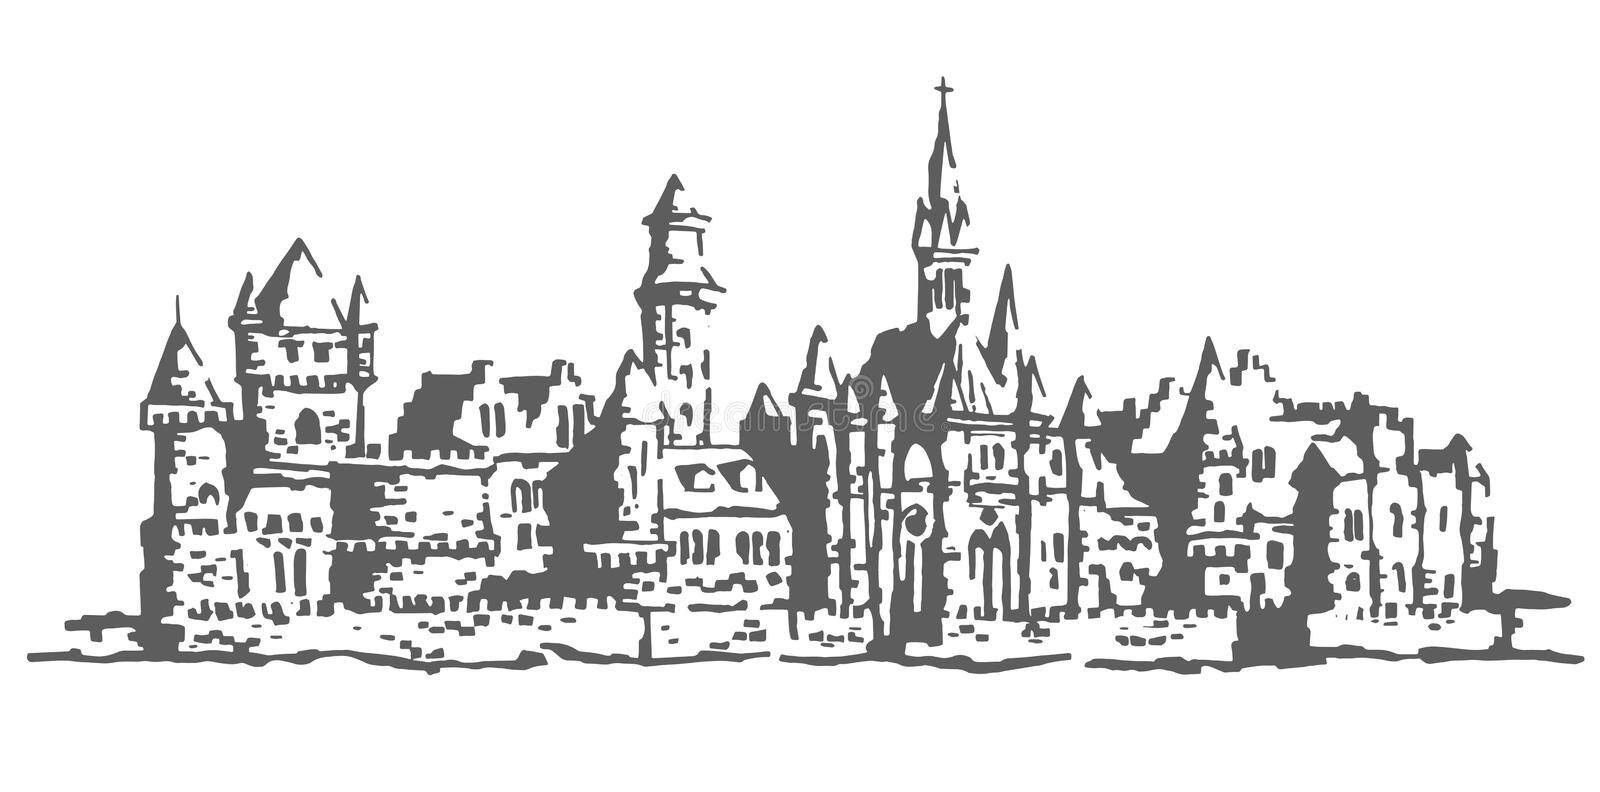 Authentic Castle tower hand drawn royalty free illustration